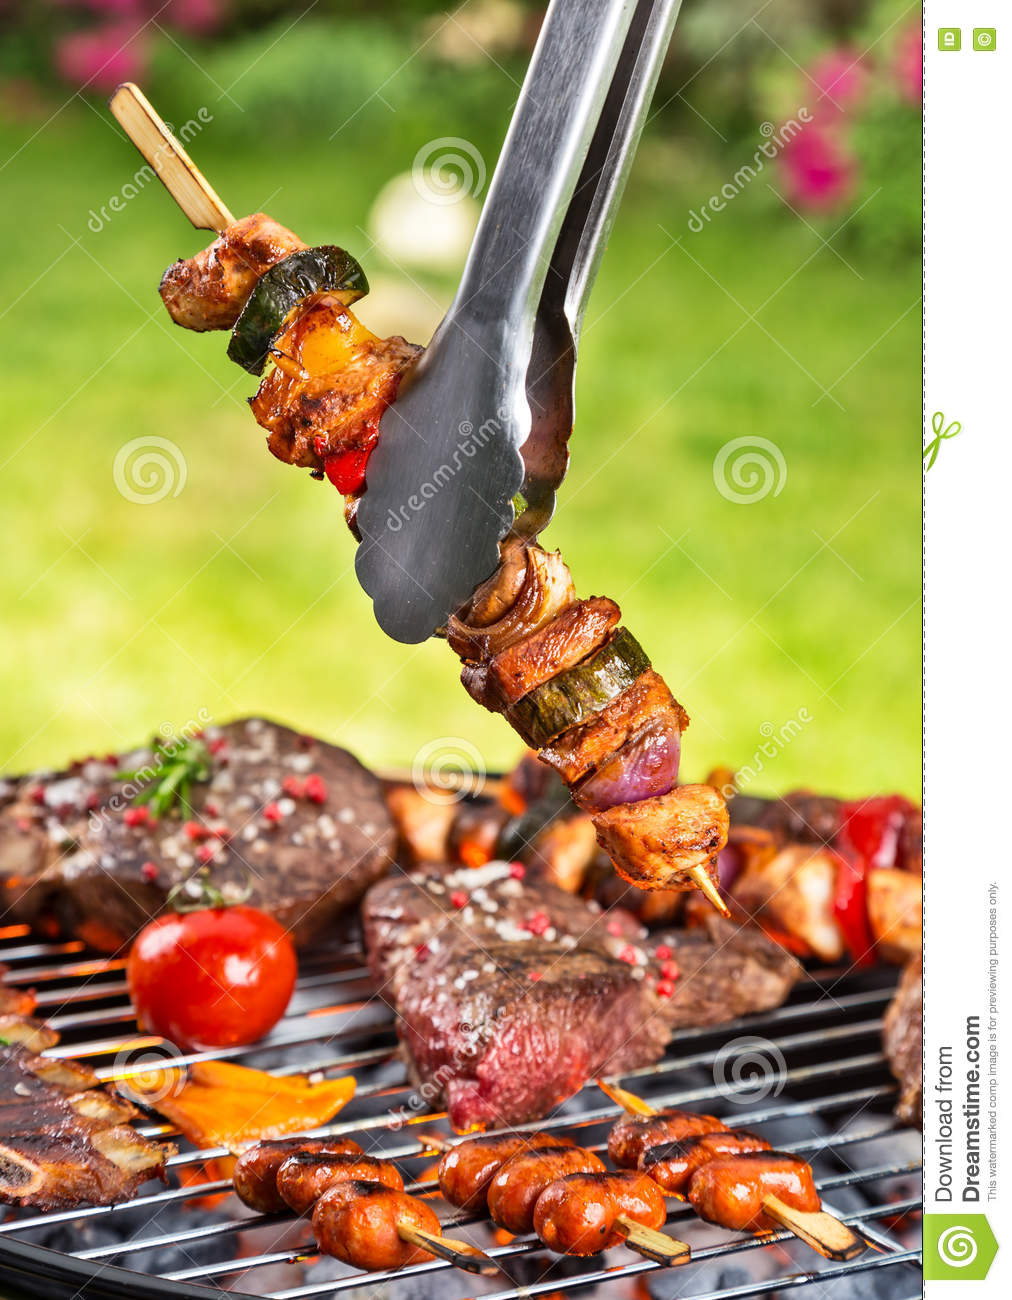 Meat skewer on grill stock photo. Image of outside, cook ...